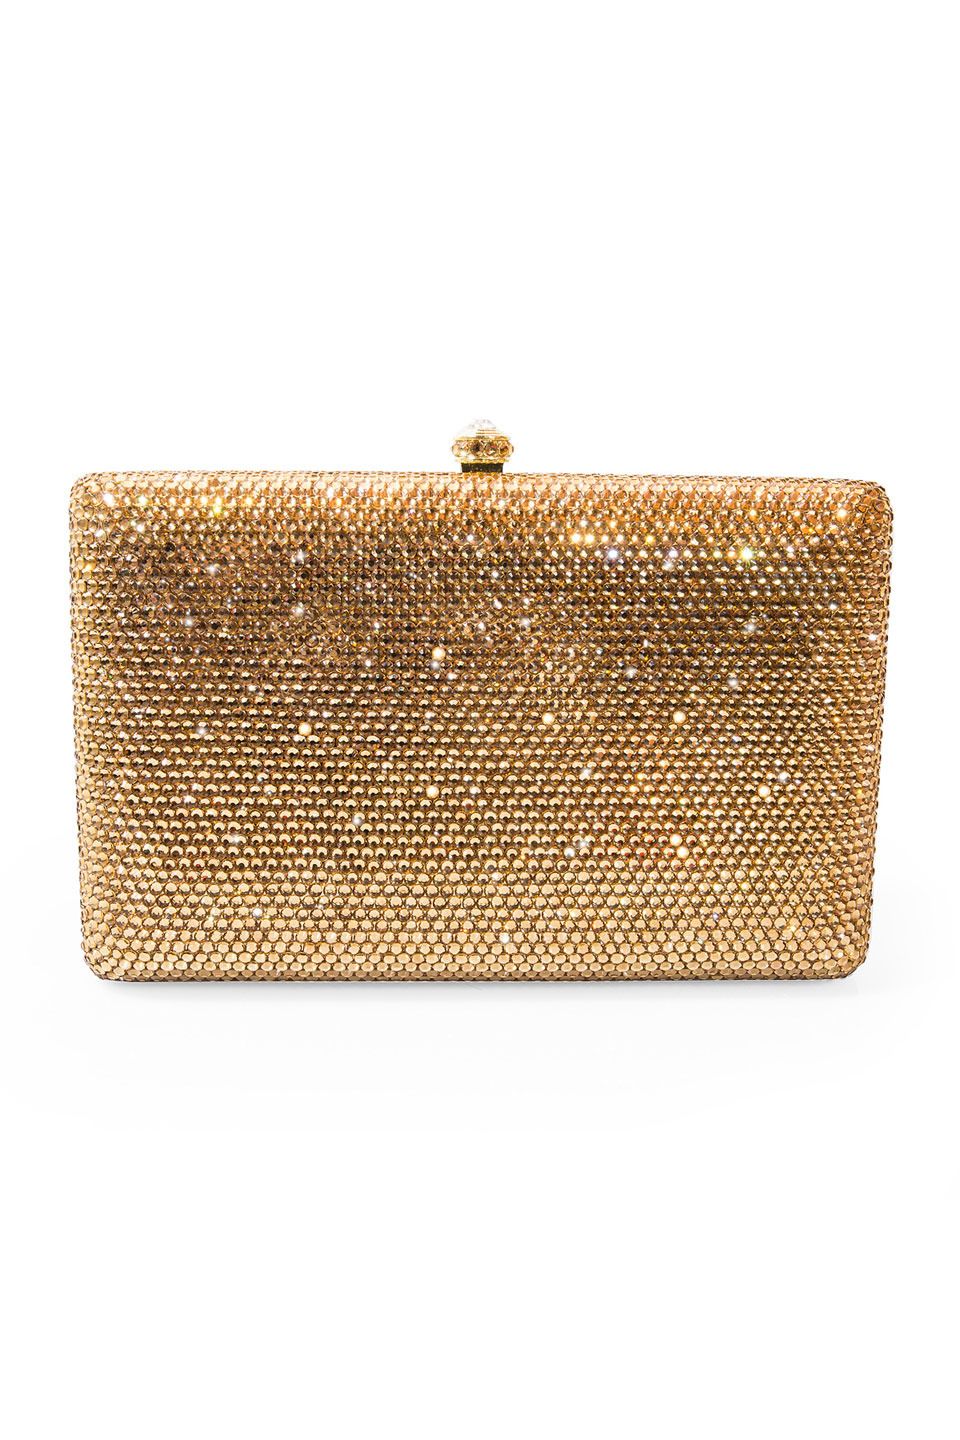 Crystal Lily Clutch in Gold